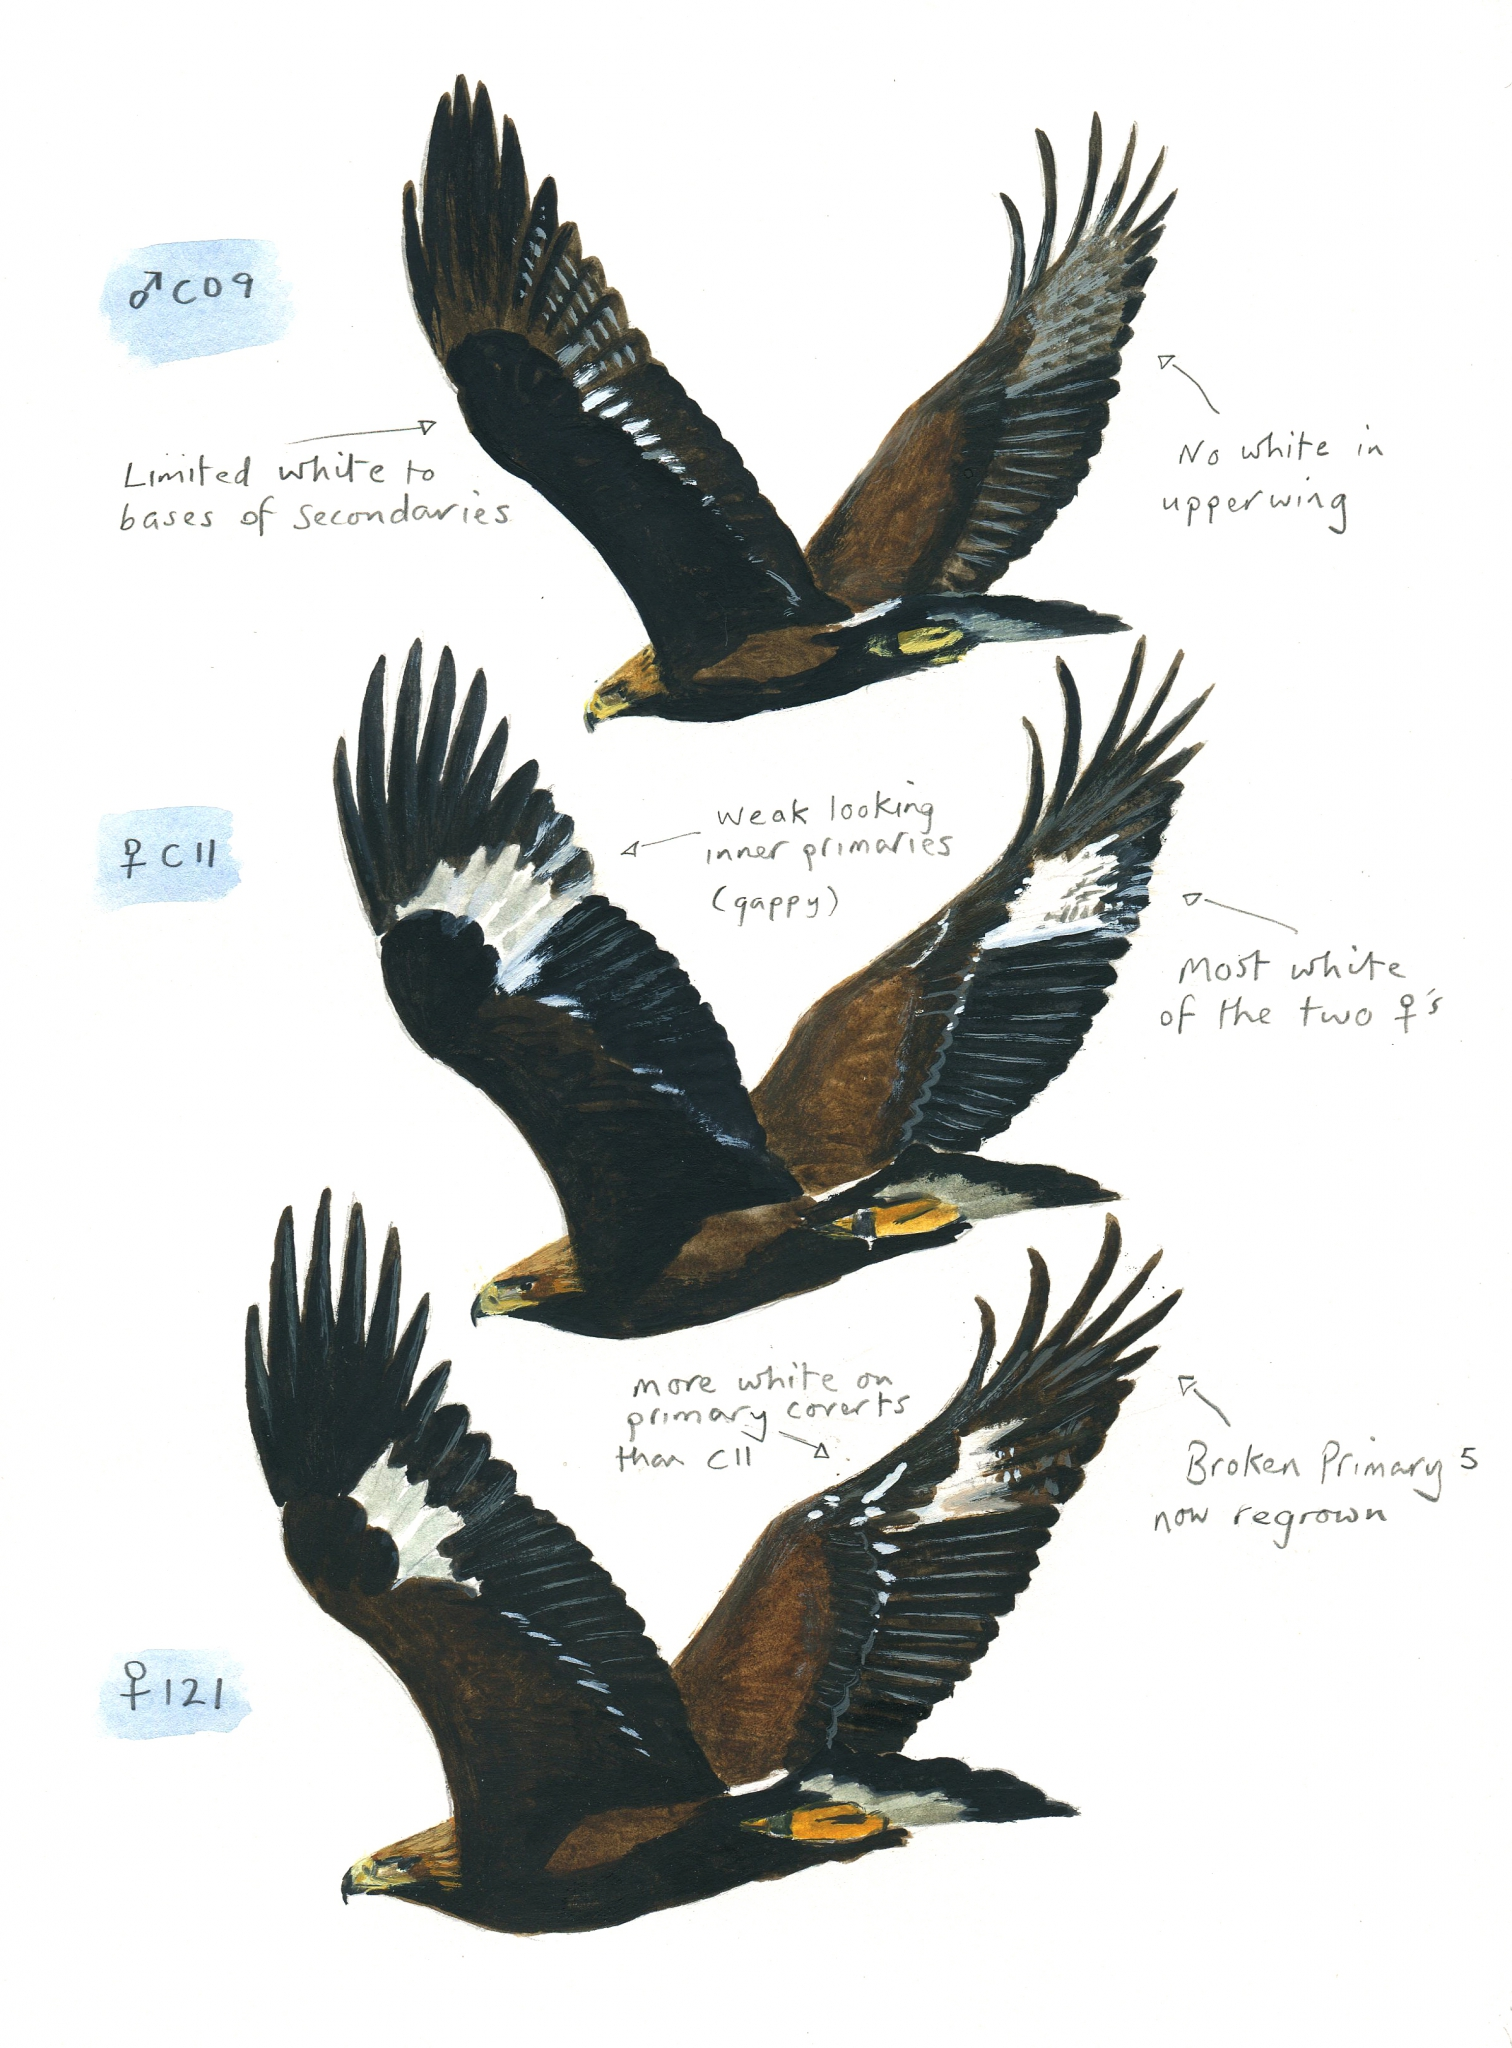 Identifying the individual Eagles